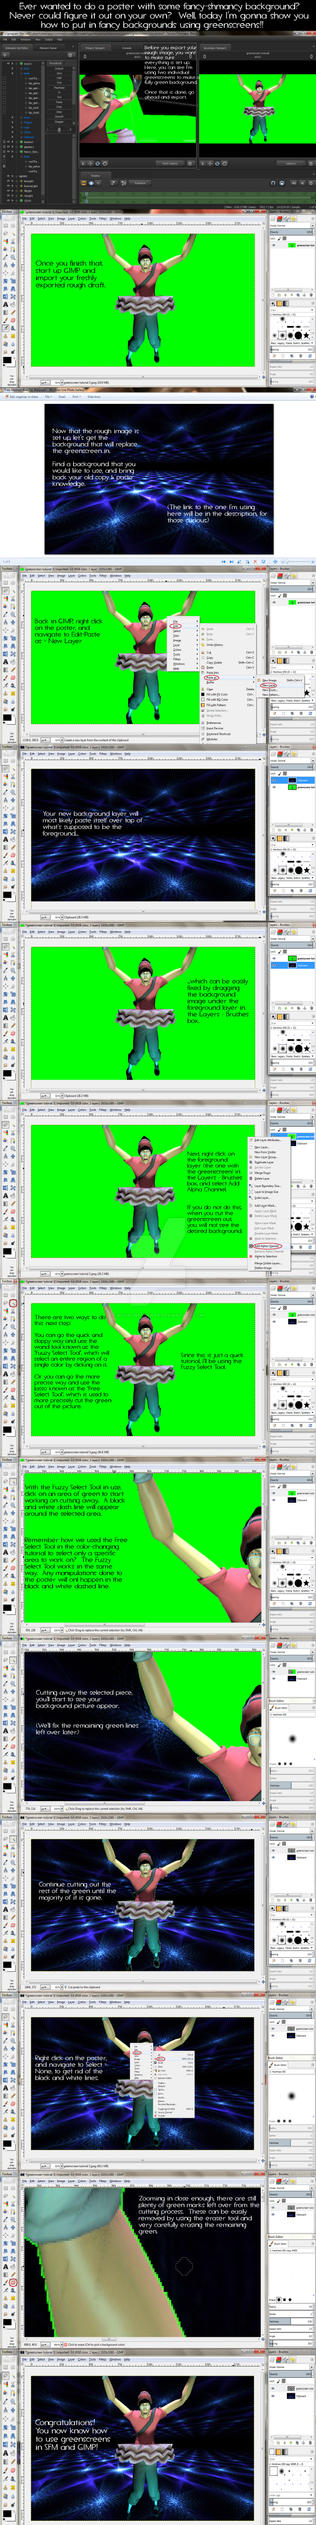 How To Use Greenscreens in SFM and GIMP by BitchyRedSniper